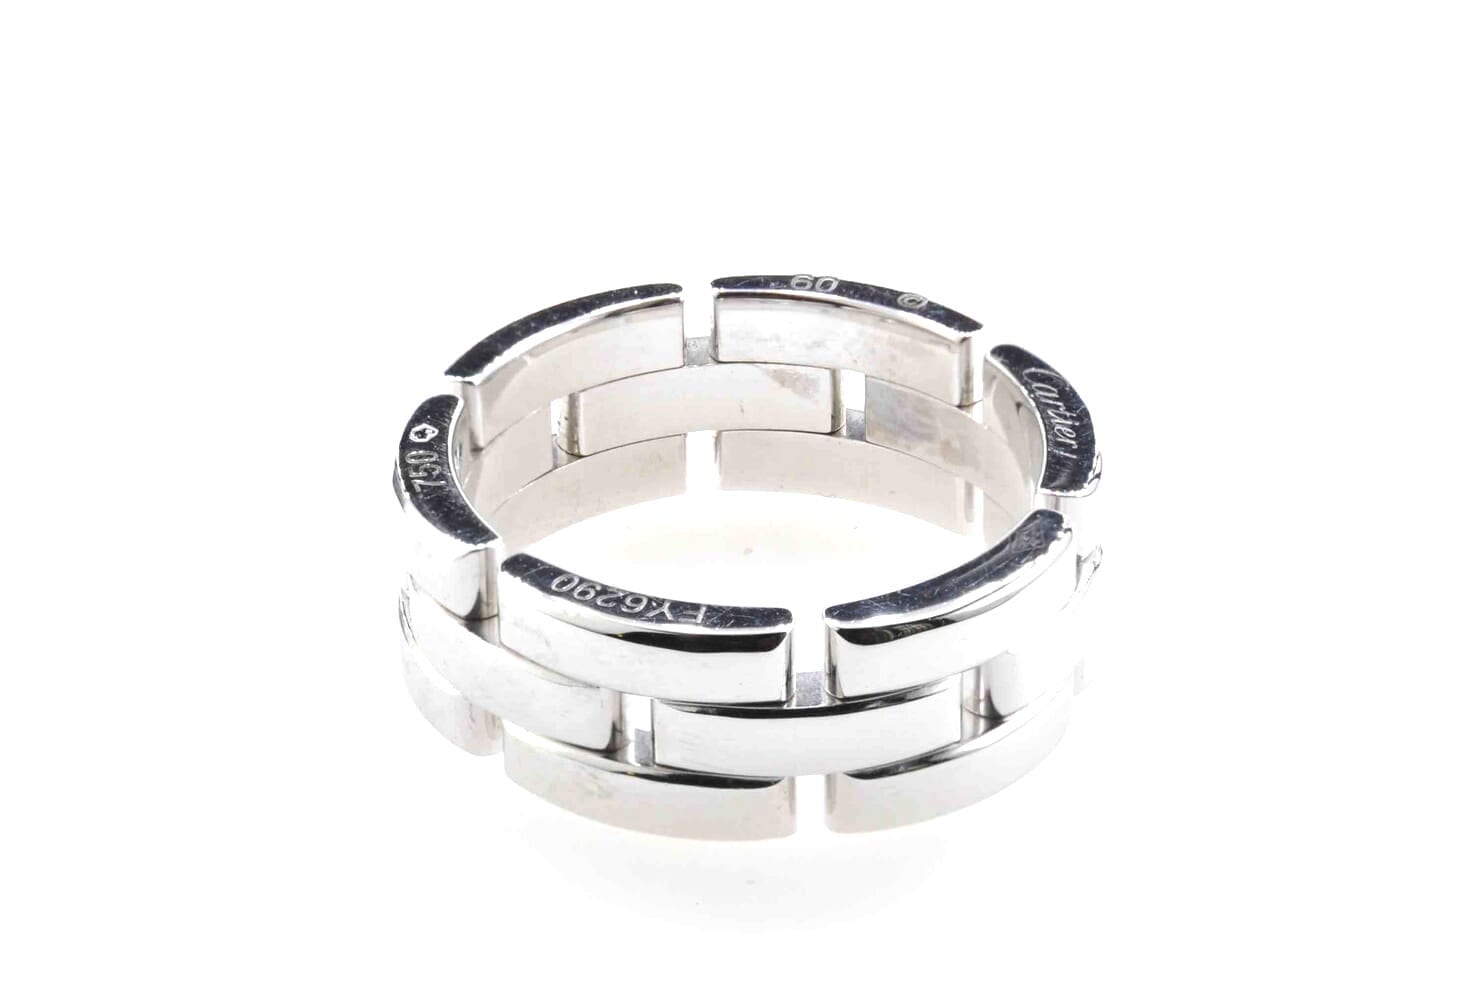 Bague occasion cartier